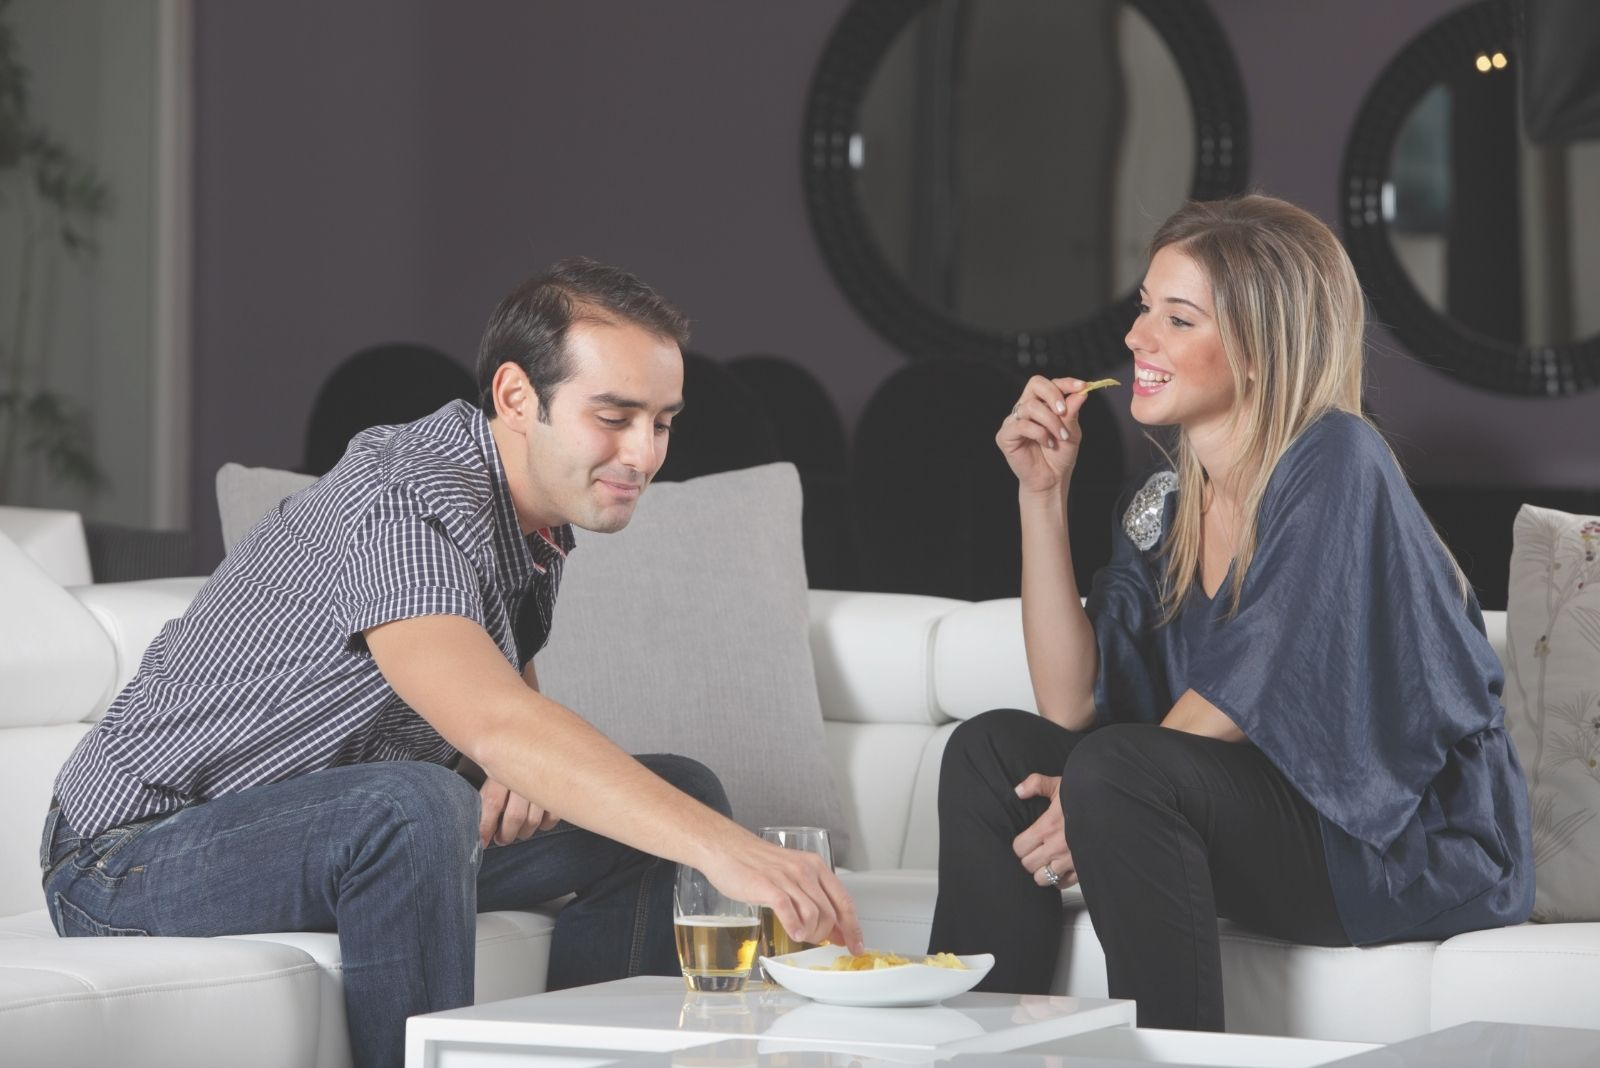 man and woman eating chips and drinking beer while sitting in a sofa